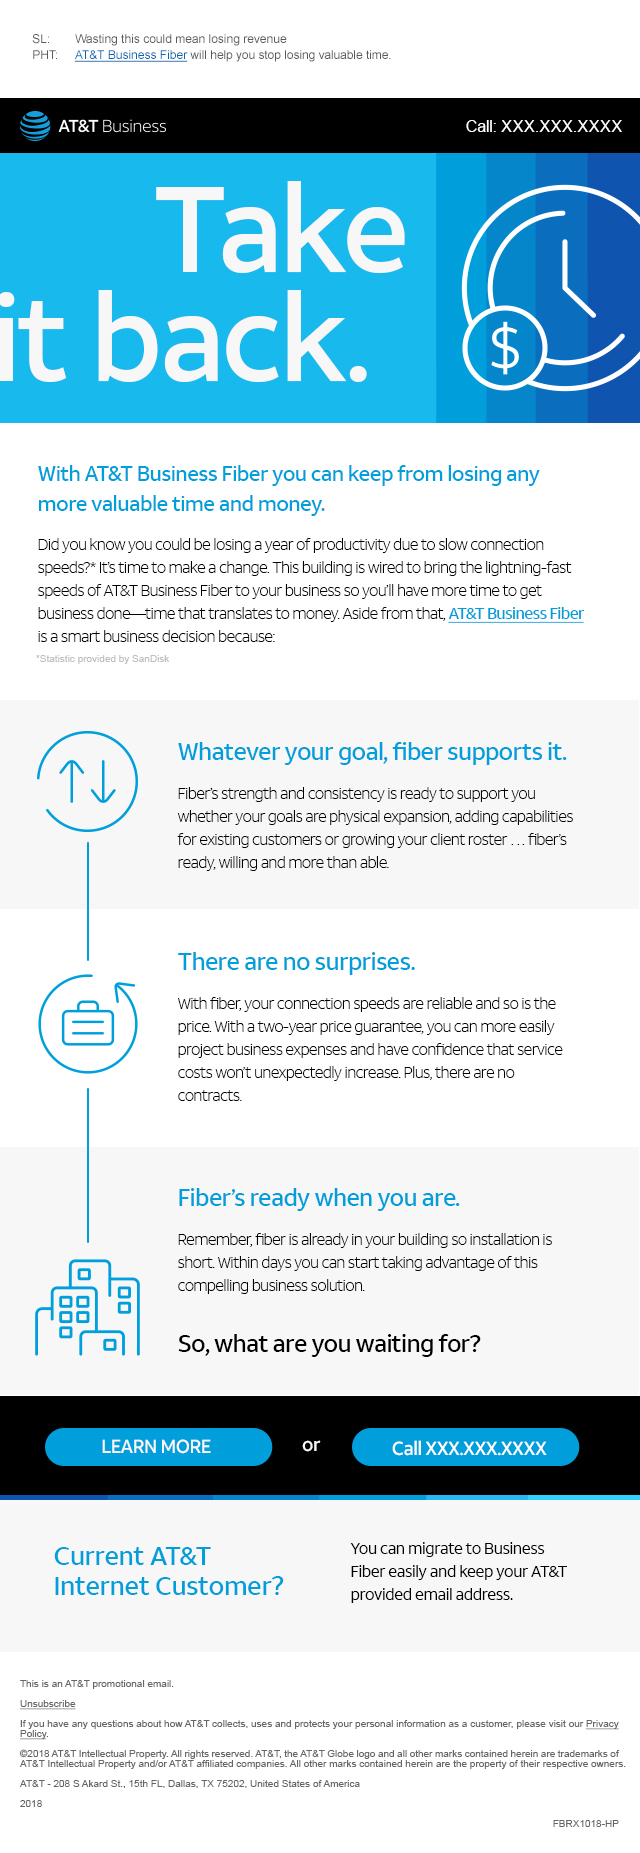 Take it back. - Reasons to sign up for AT&T Business Fiber.